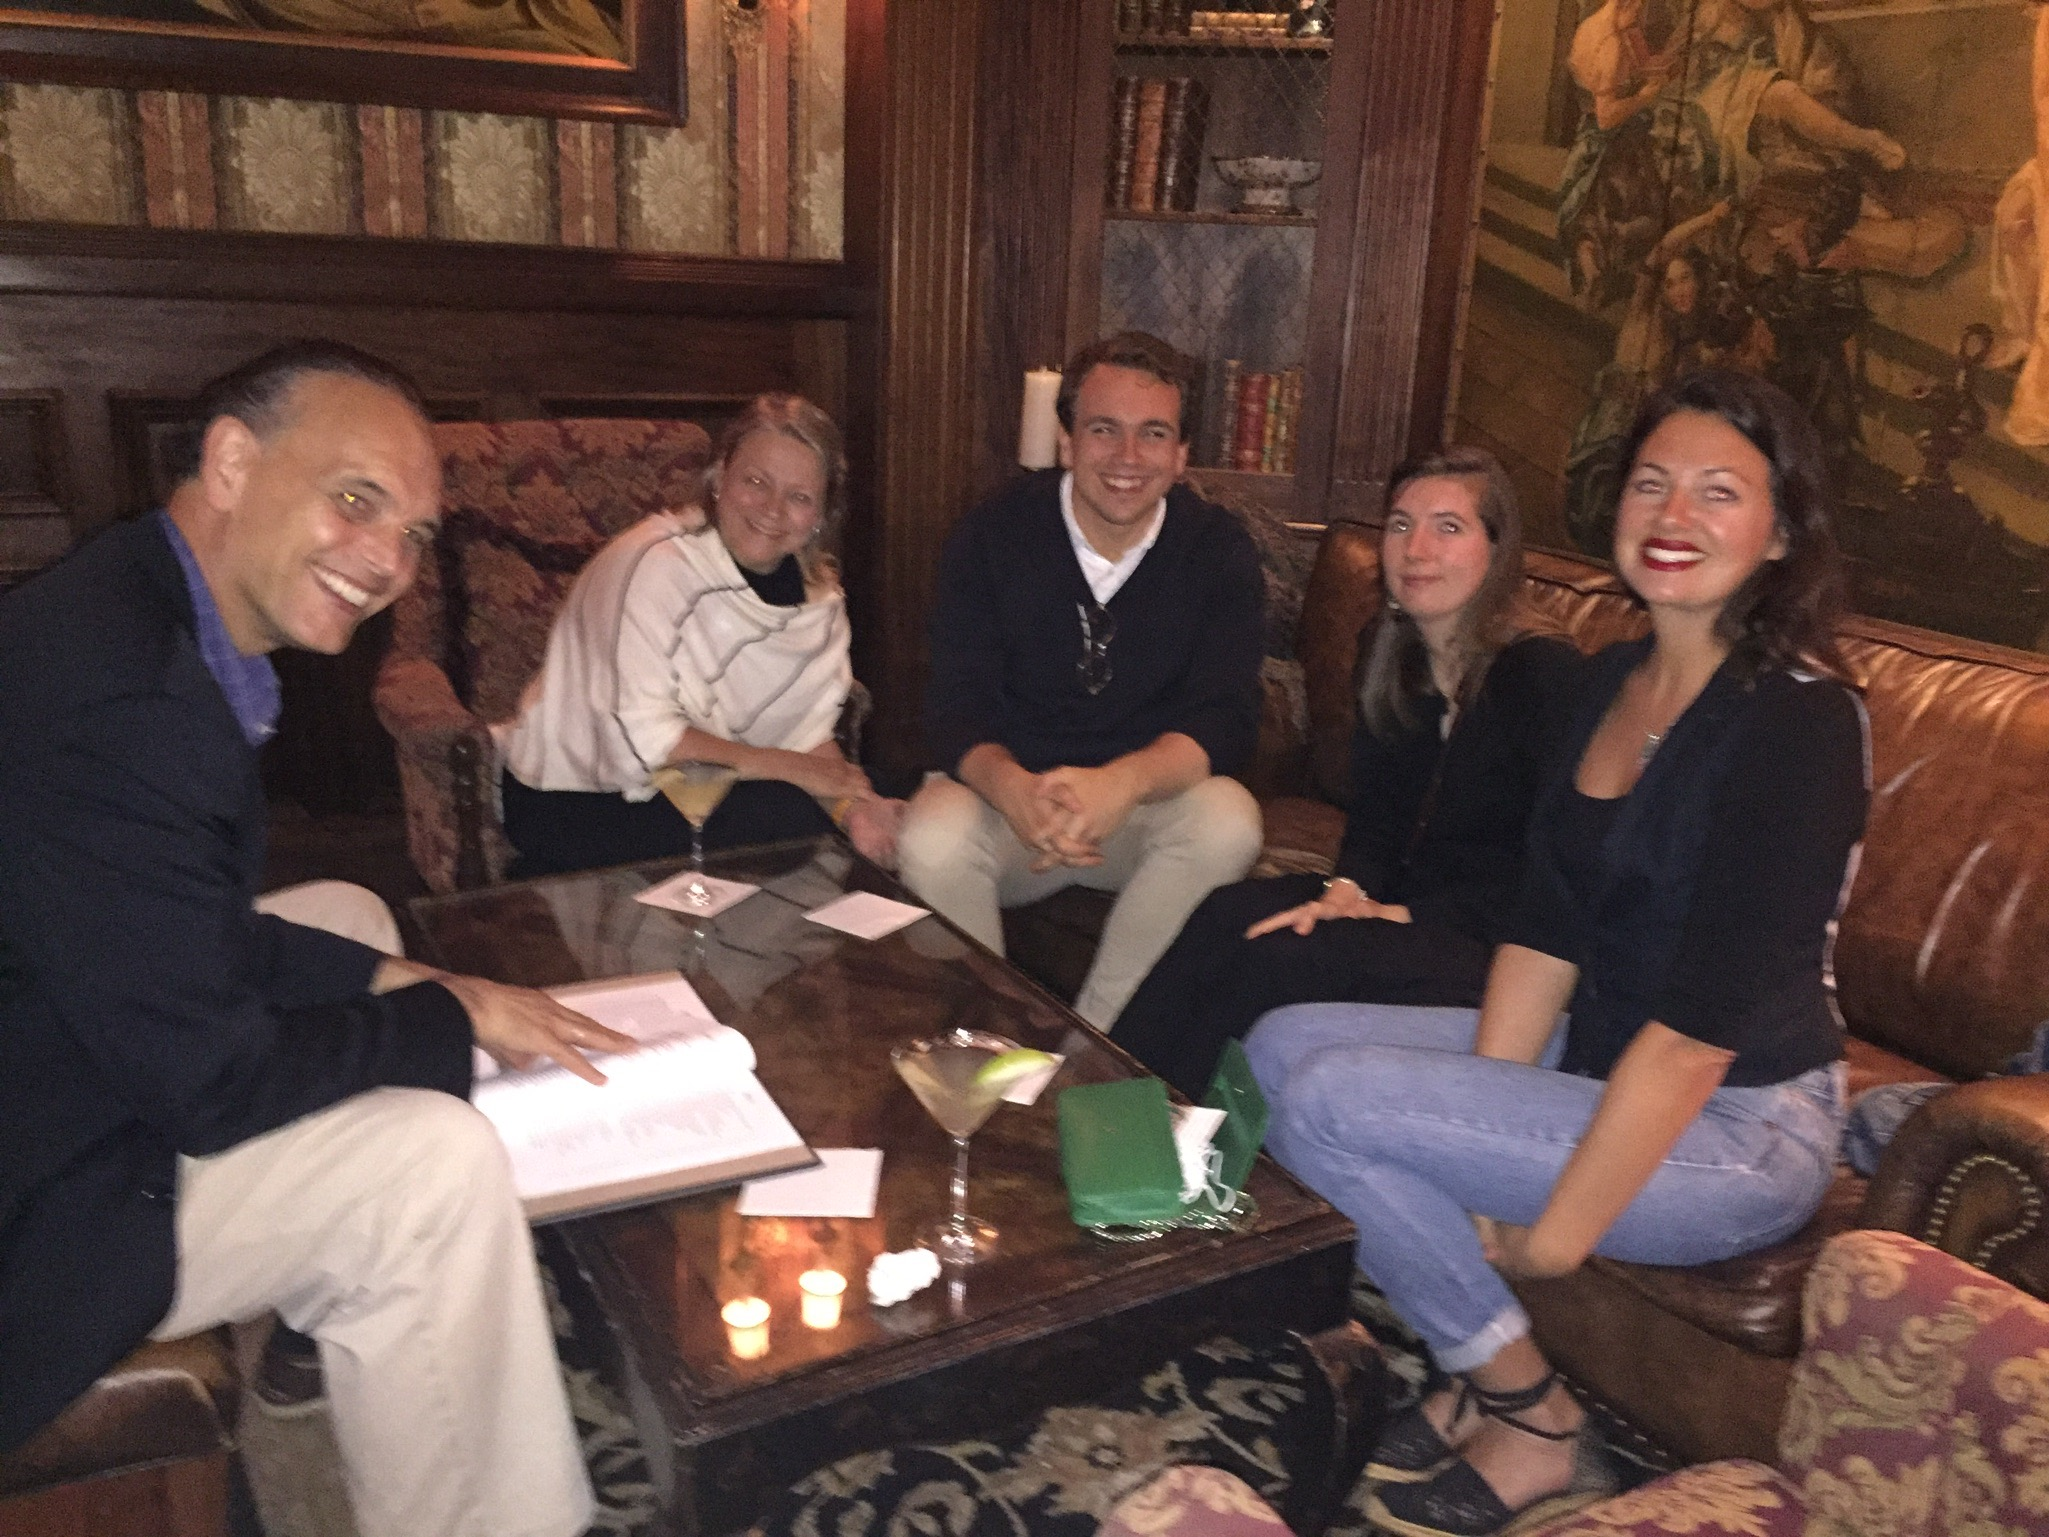 Mike & Pat Fernandez with their son, his girlfriend, and Sachi's best friend Iris Pelham having cocktails after The NewportFlower Shpow 2018